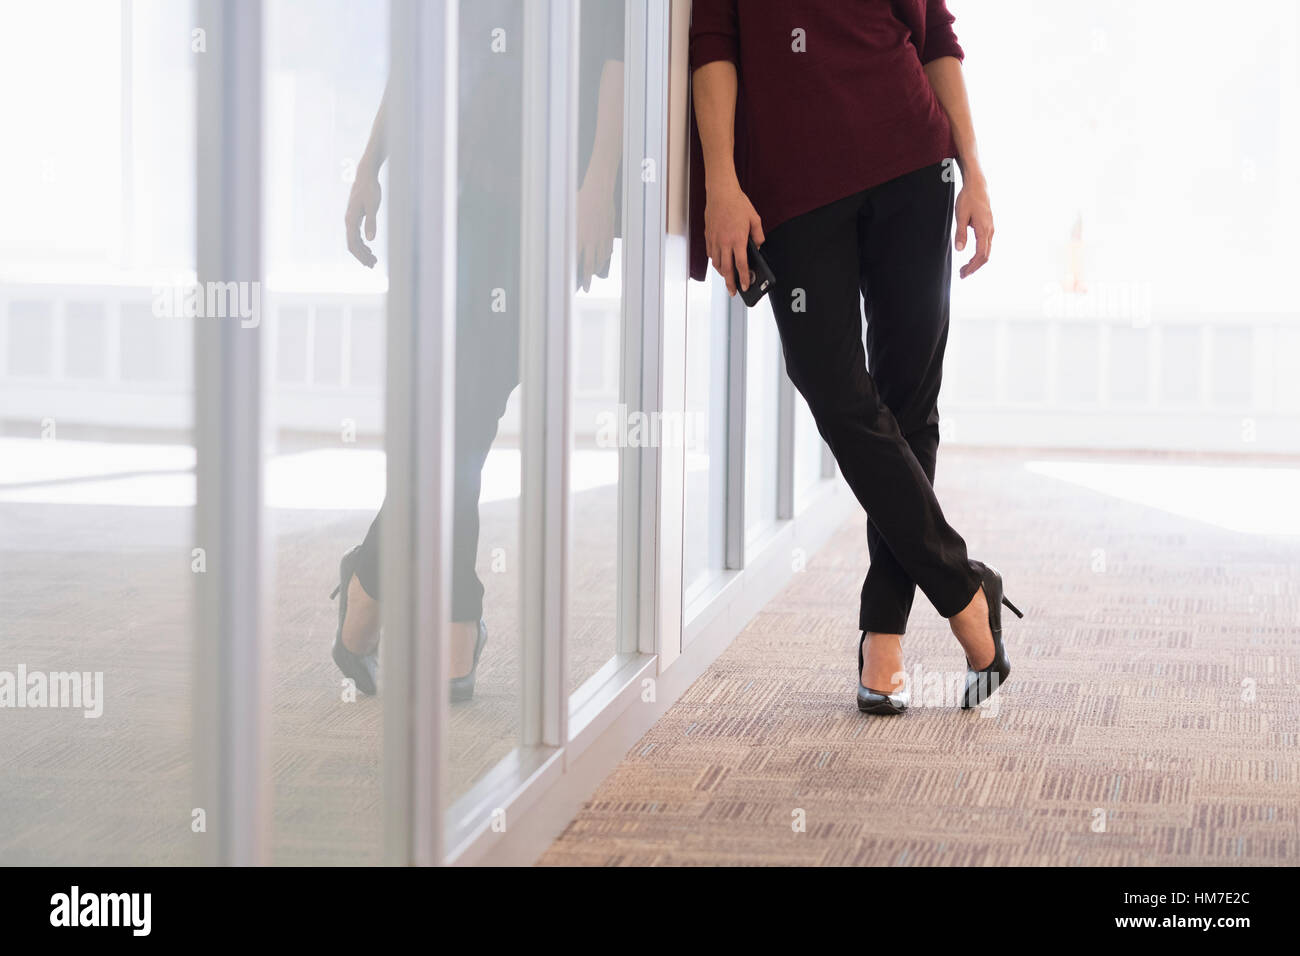 Low section of young woman leaning on glass wall - Stock Image